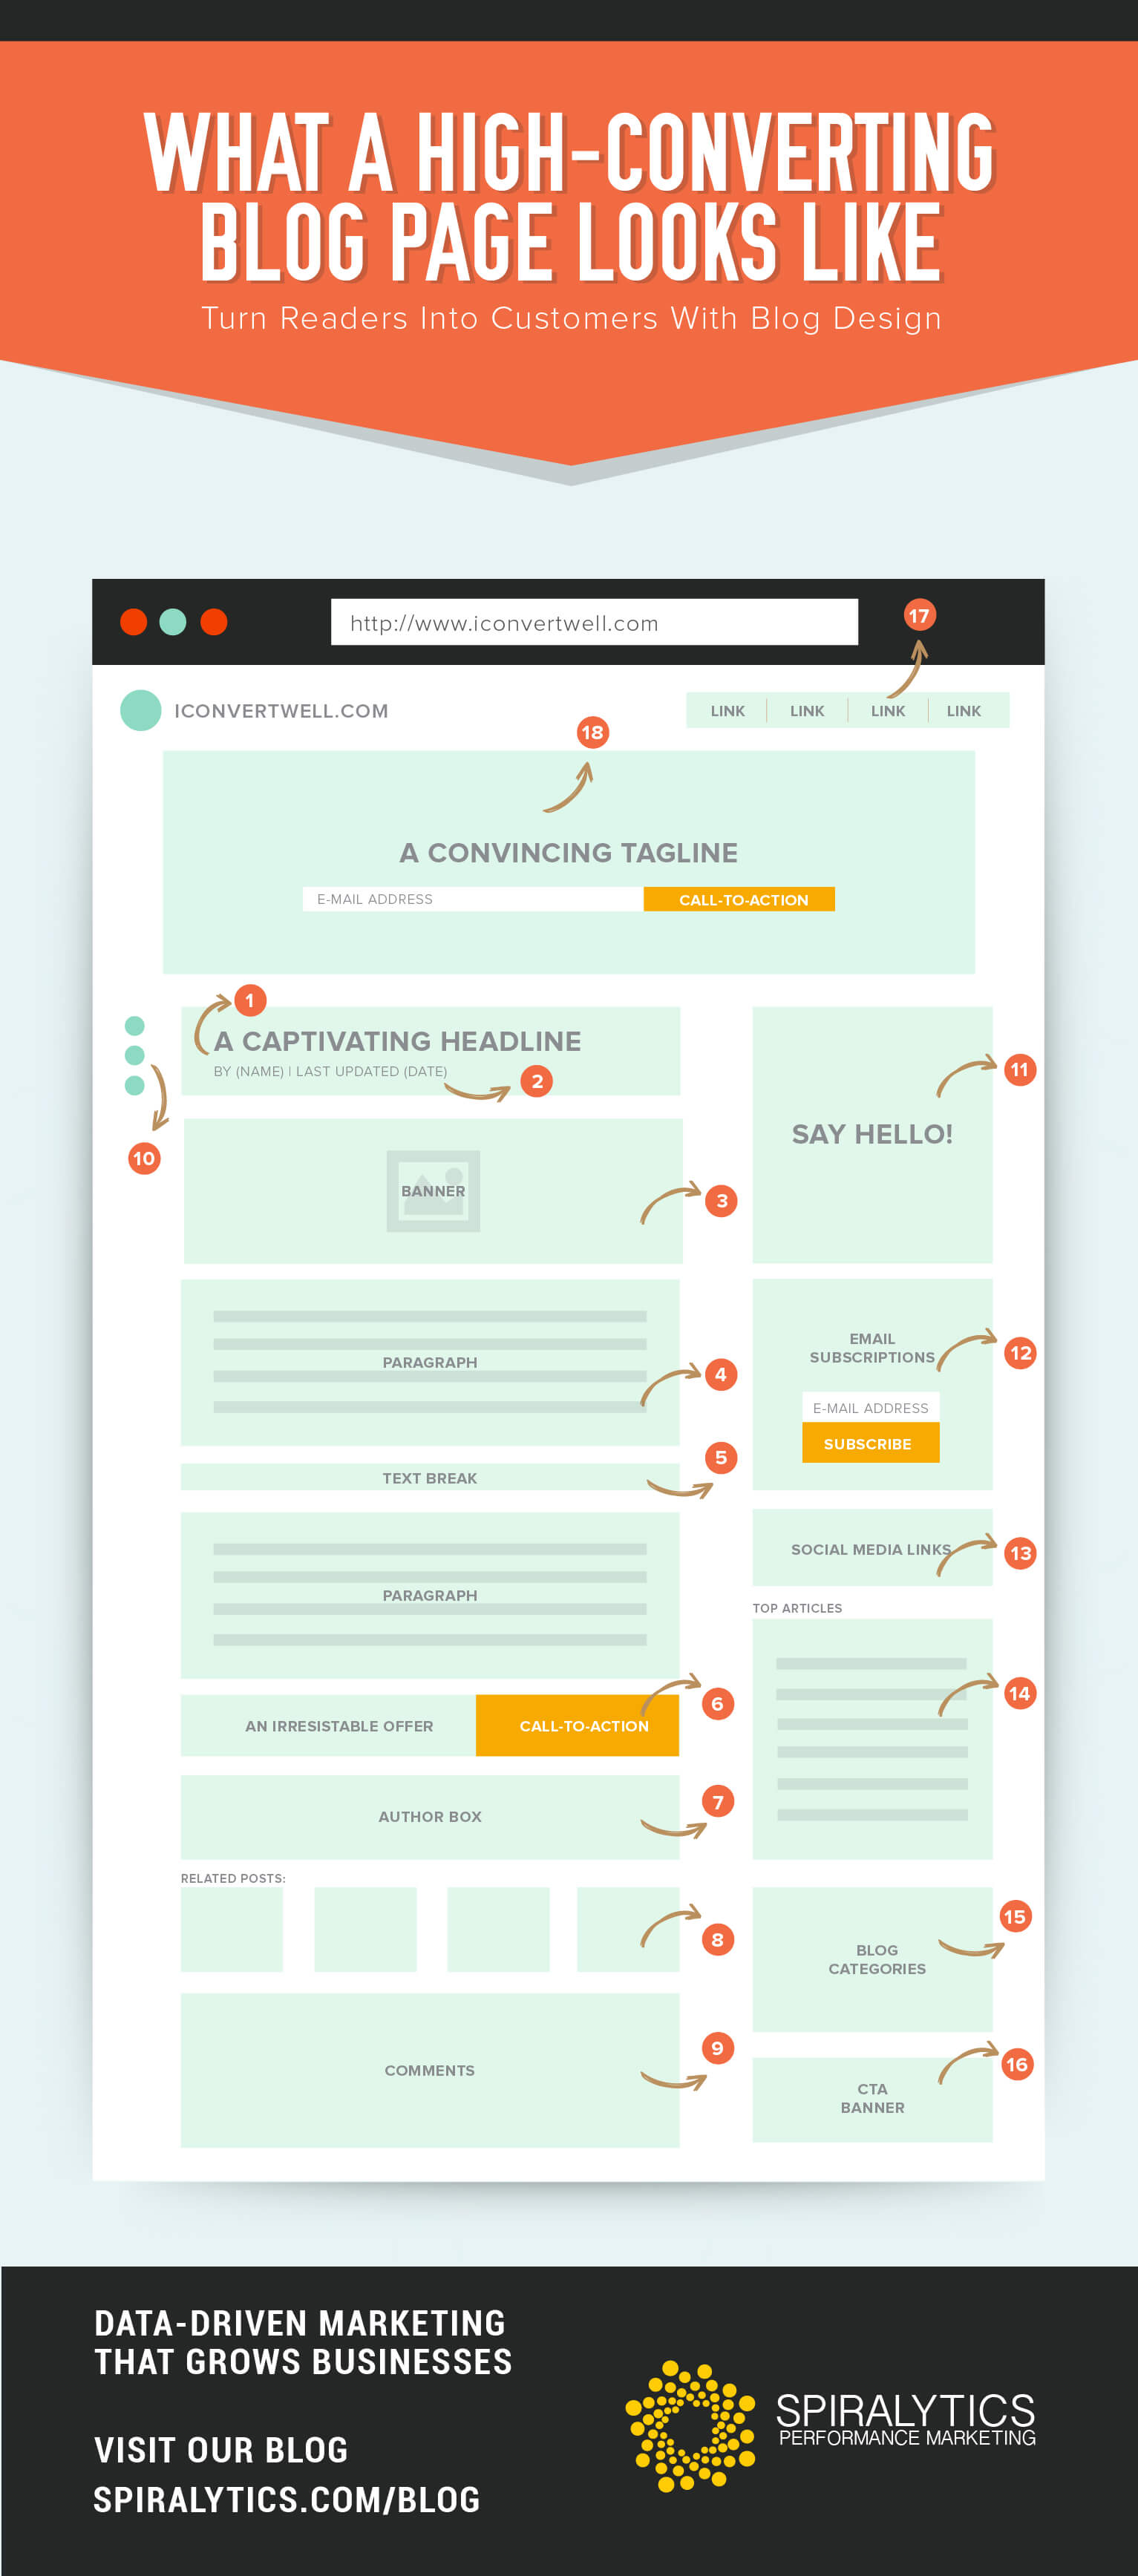 high-converting blog page design